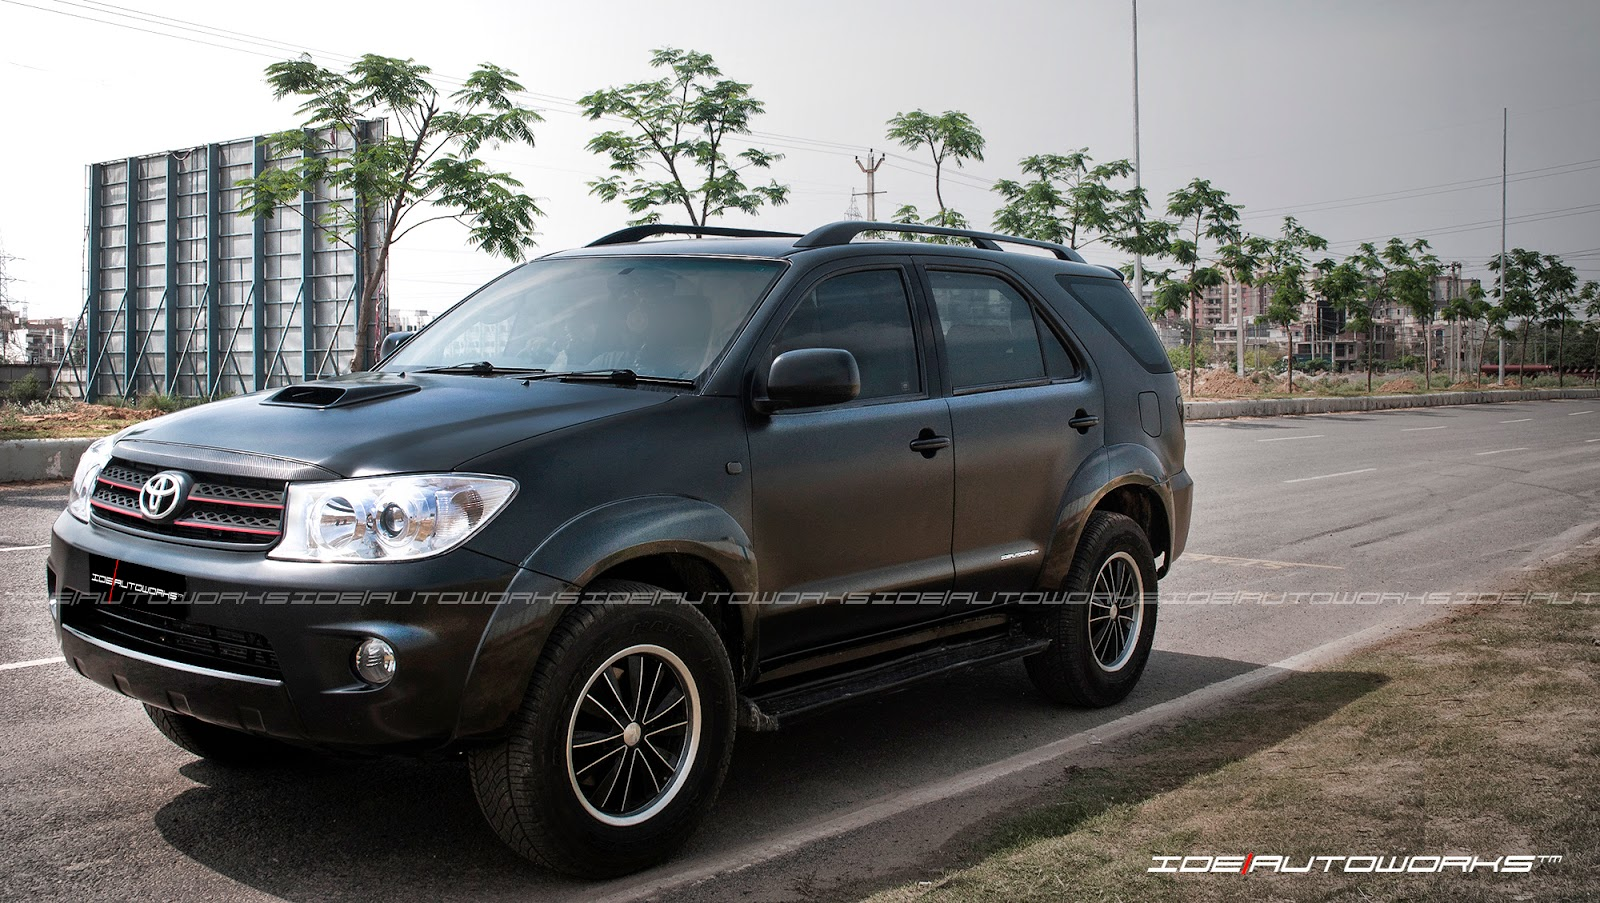 Vios Black Modified >> Toyota Fortuner Black Modified | www.imgkid.com - The Image Kid Has It!